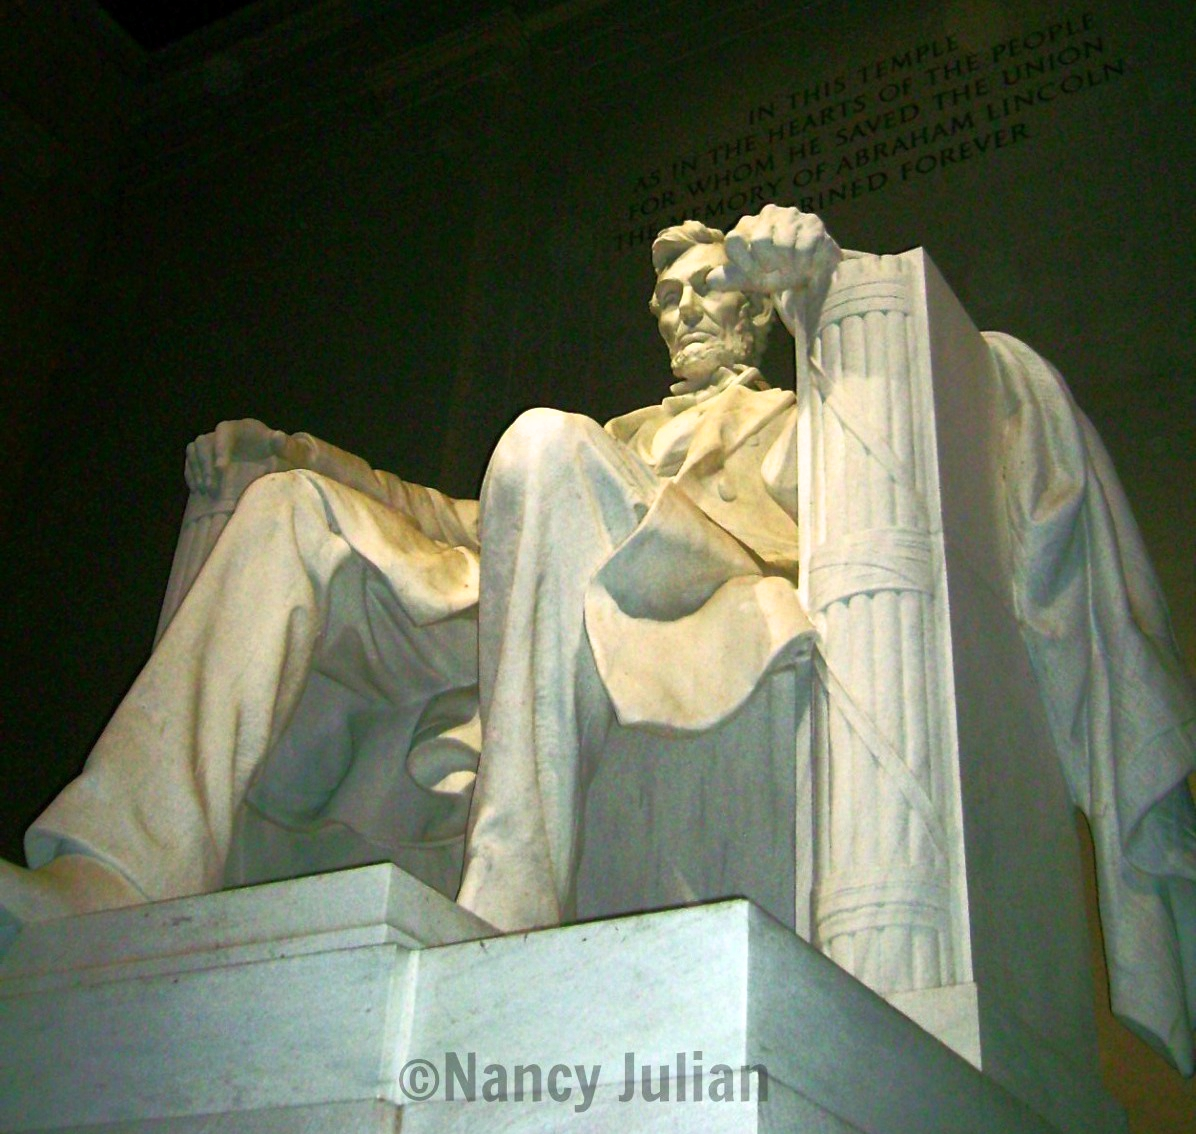 The Lincoln Monument in Washington